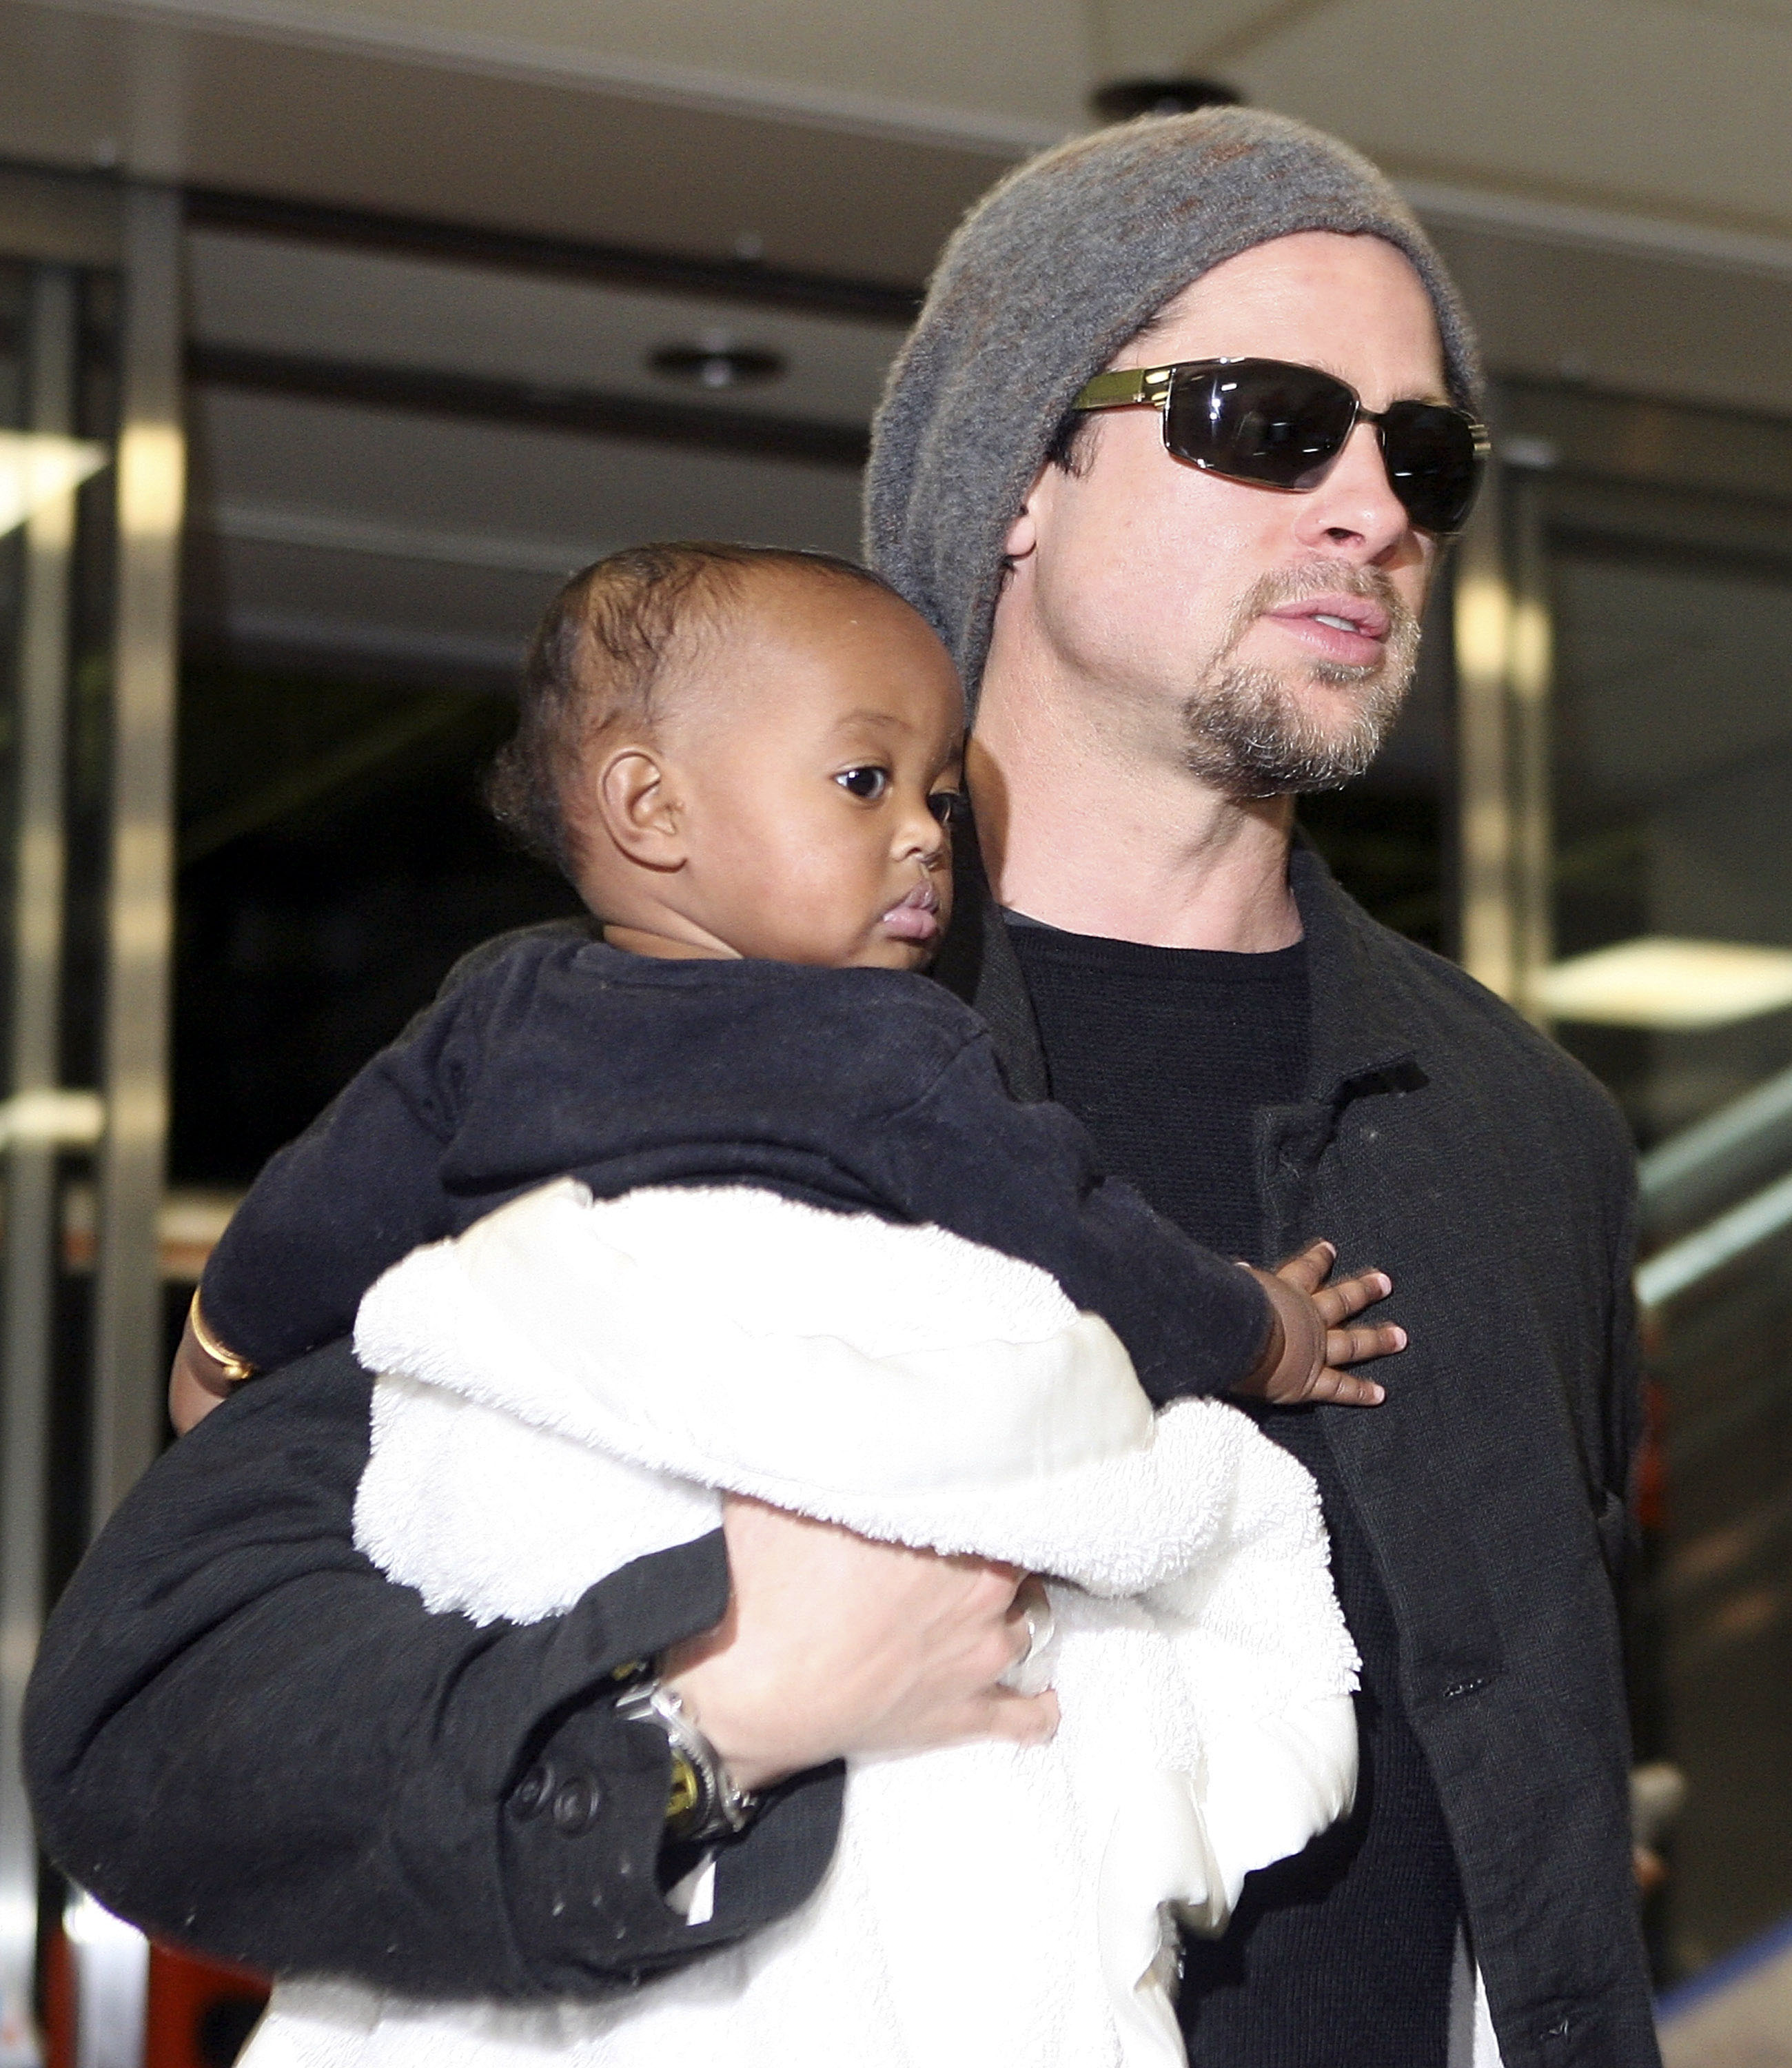 Actor Brad Pitt holds Zahara Marley Jolie (Angelina Jolie's daughter) as they arrive at the New Tokyo International Airport on November 27, 2005 in Narita, Japan. Pitt and Angelina Jolie are in Japan to promote a film 'Mr. and Mrs. Smith.' (Photo by Koichi Kamoshida/Getty Images)